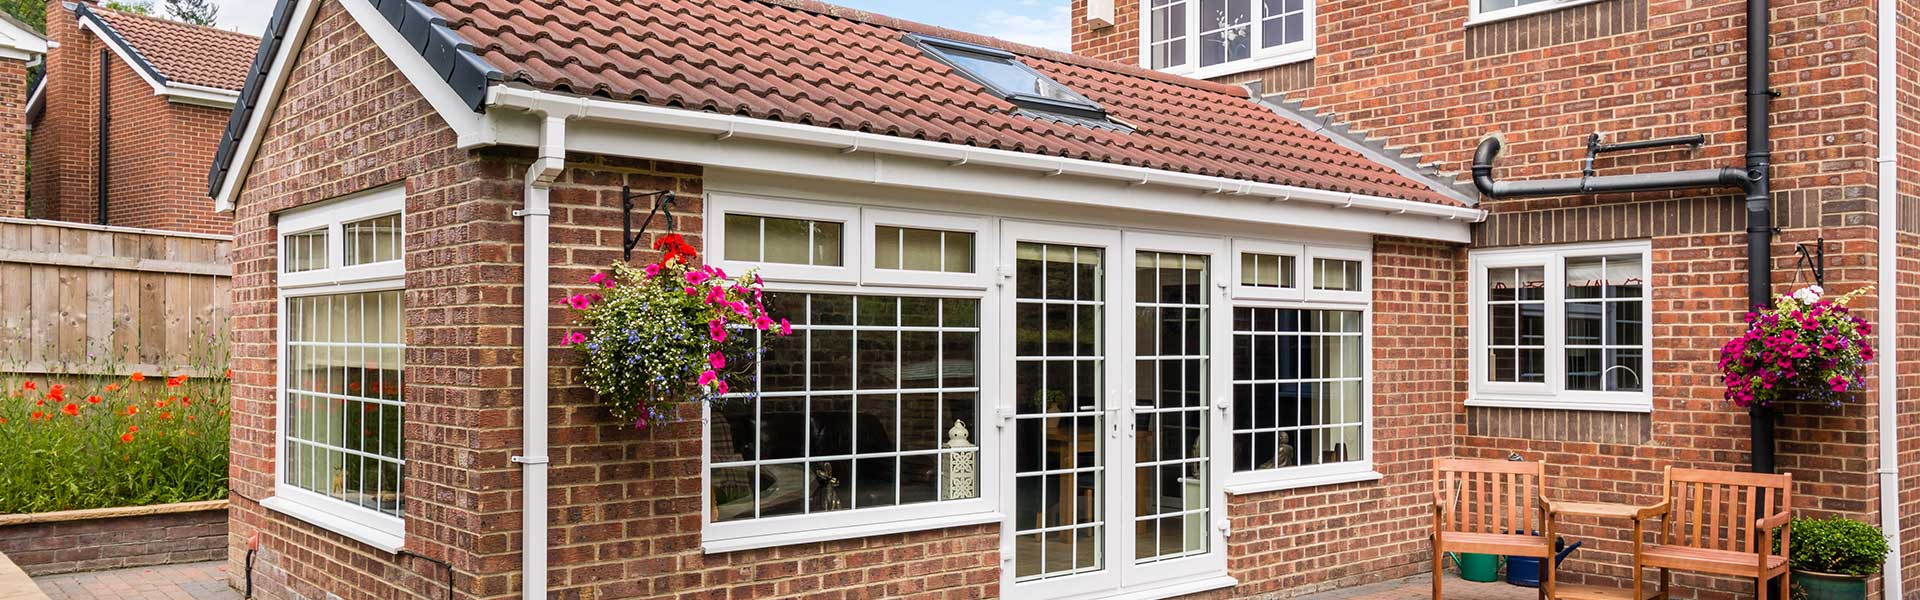 charming patio doors westbury on trym